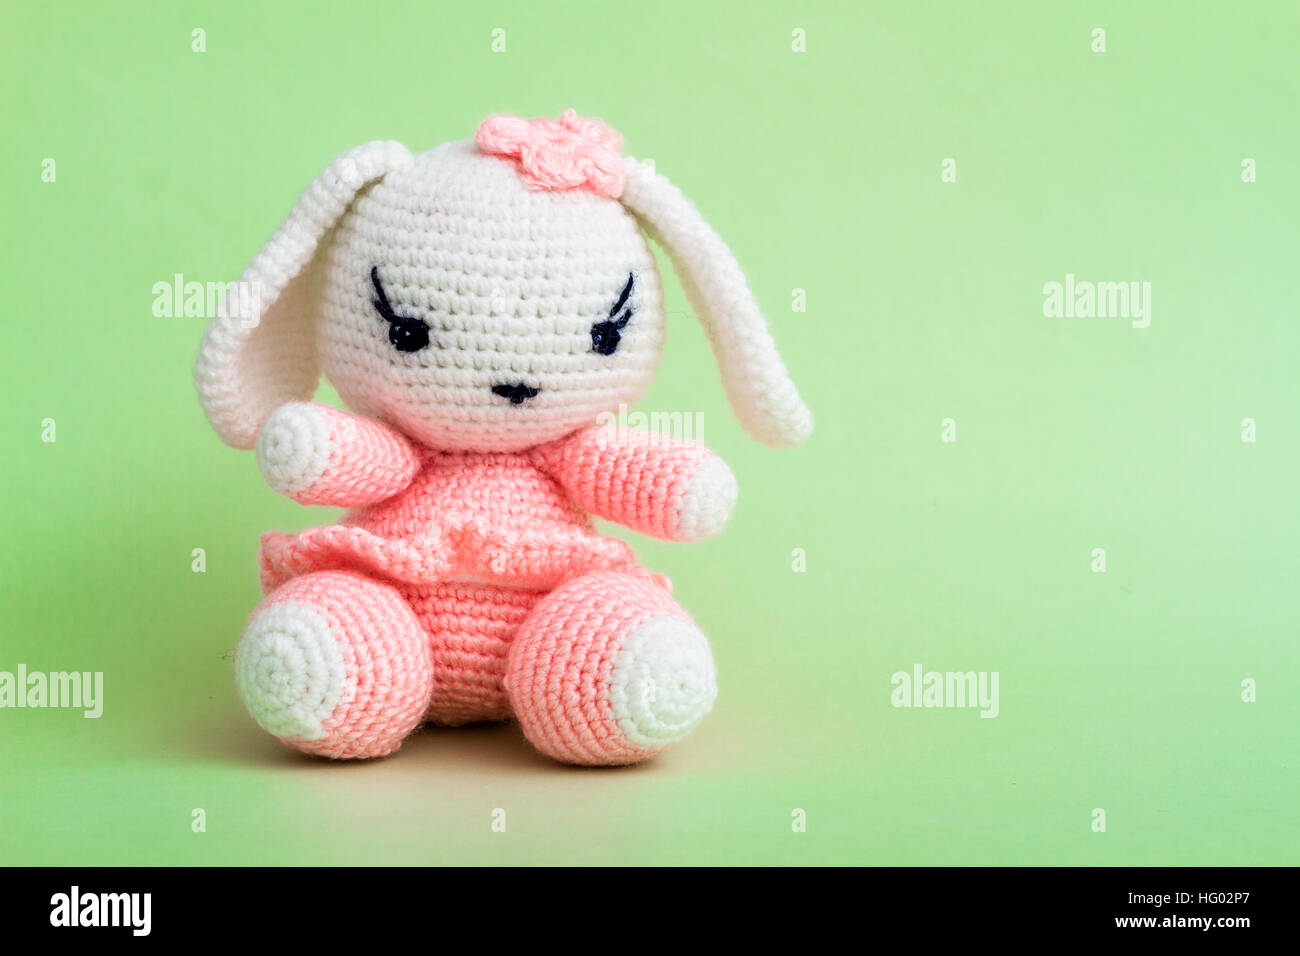 Crochet Doll Stockfotos Crochet Doll Bilder Alamy